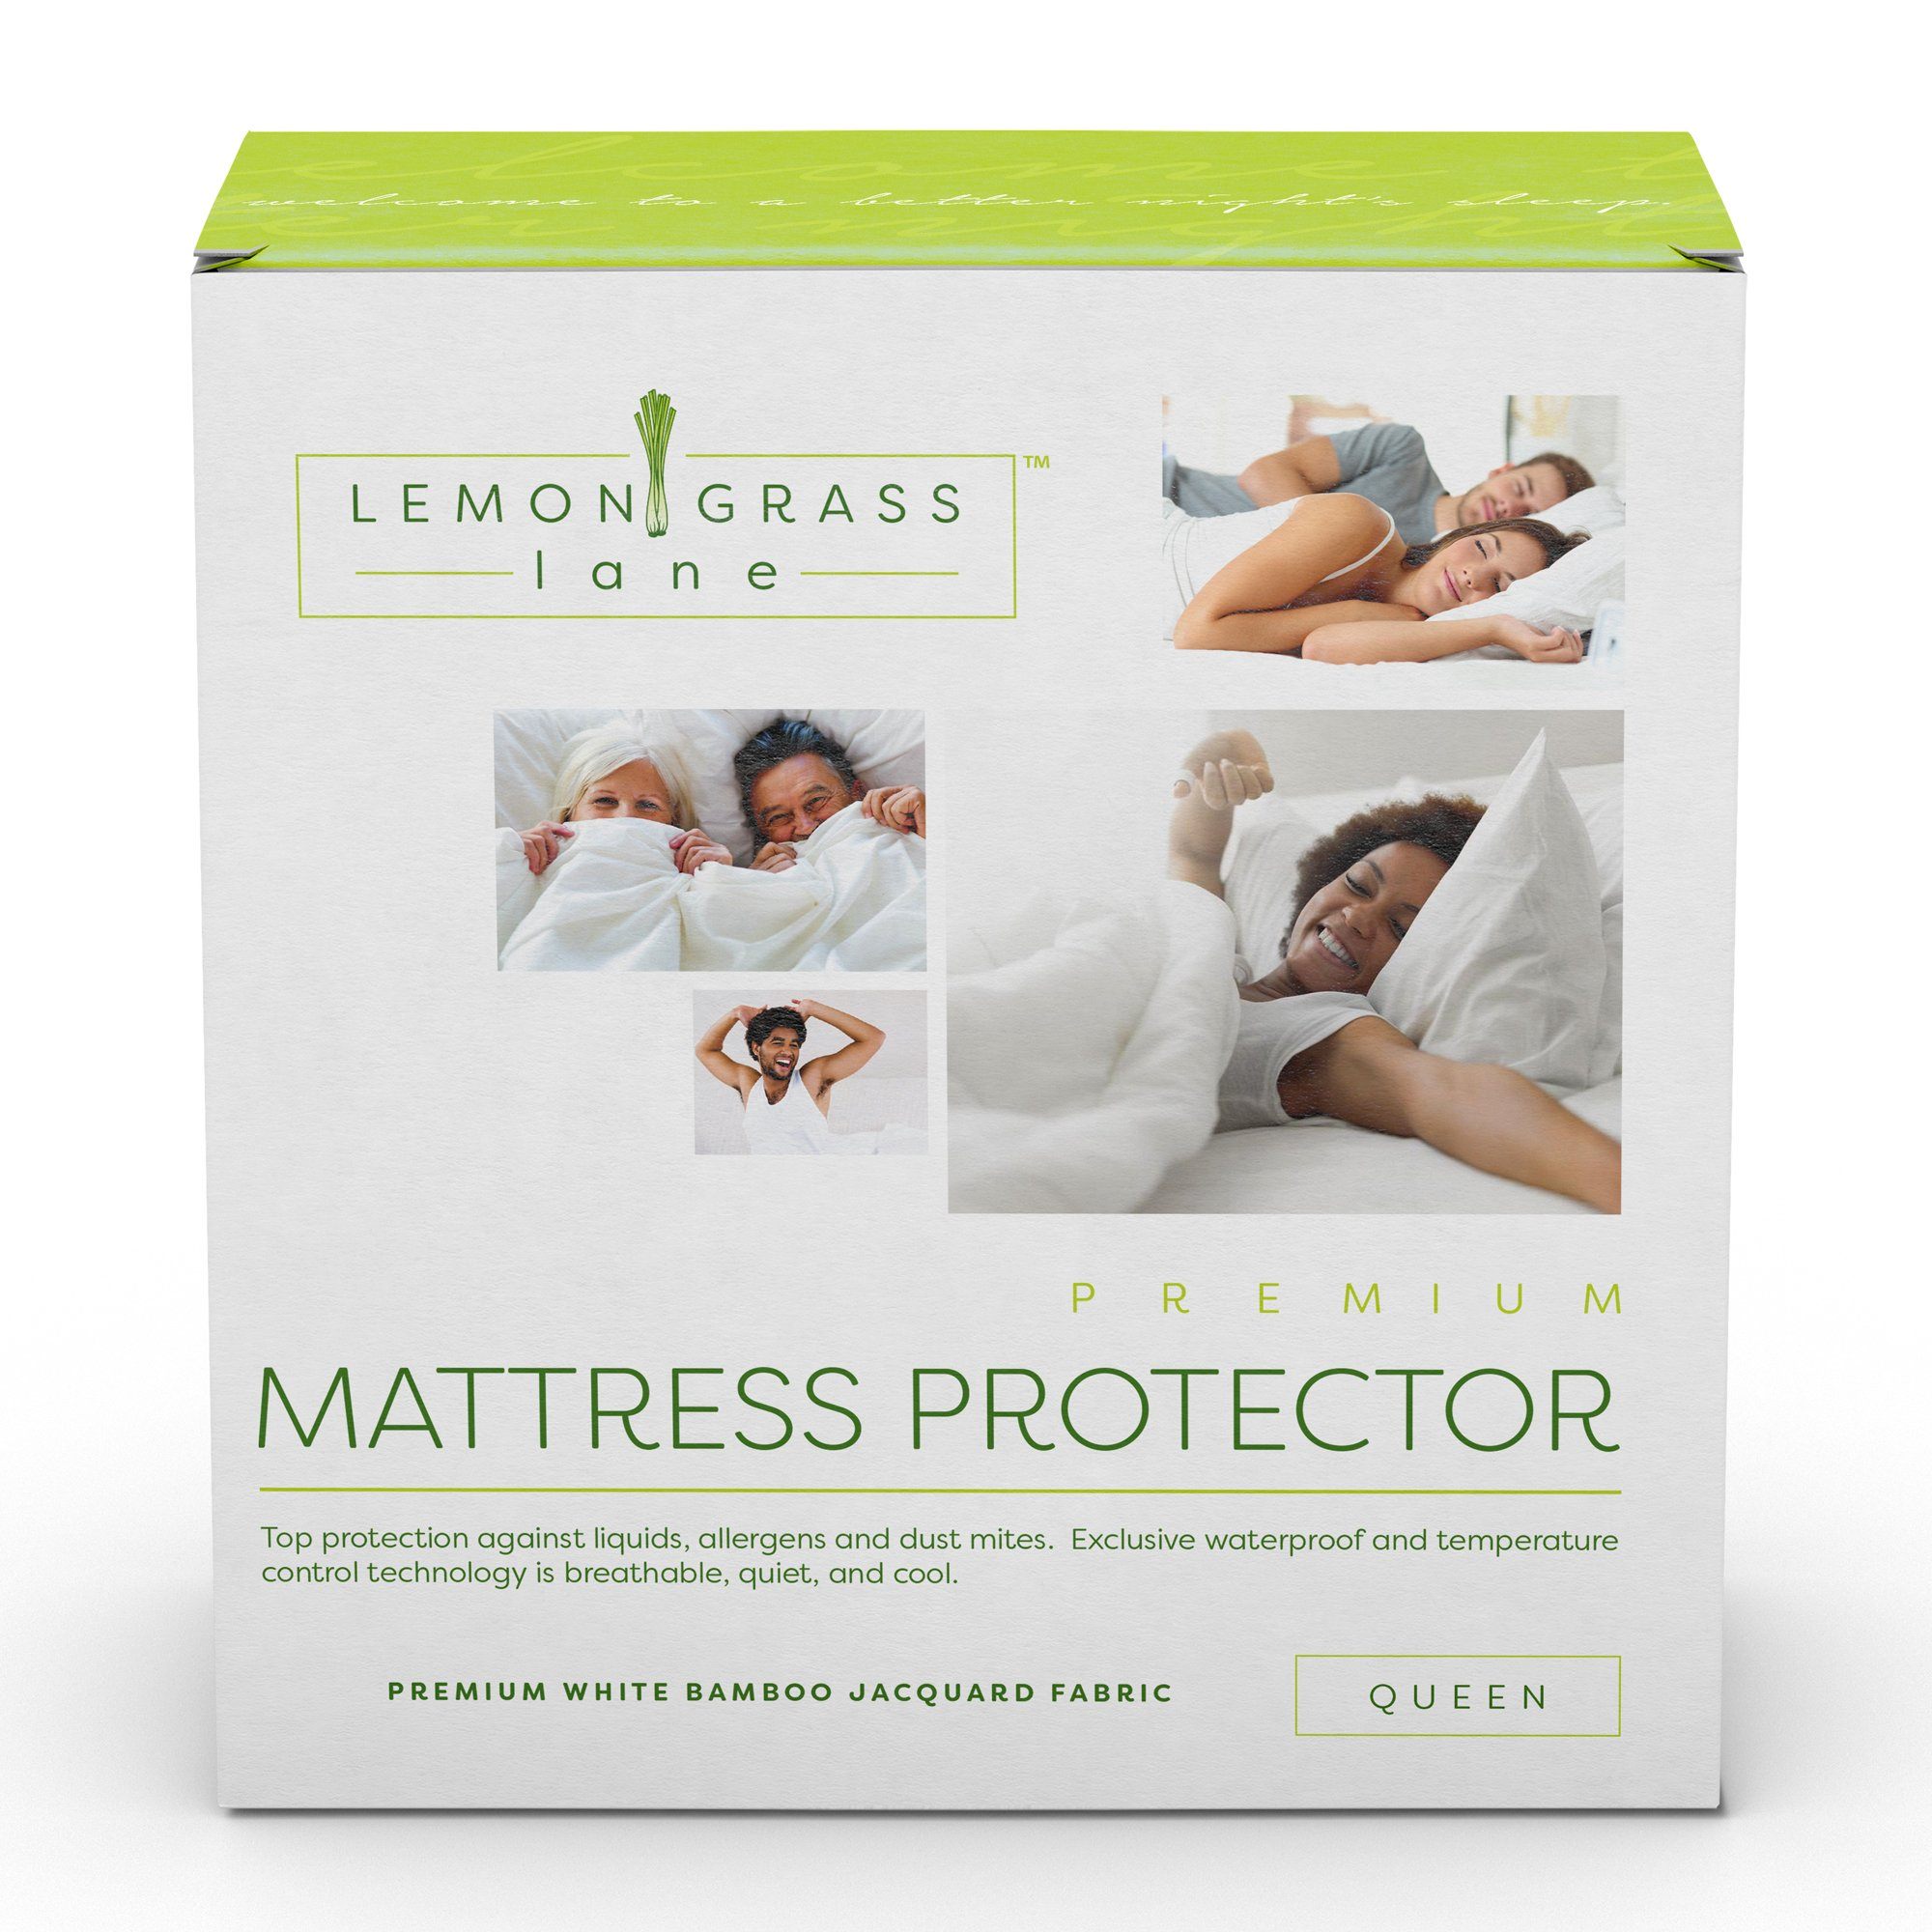 Bamboo Hypoallergenic Mattress Pad Protector Cover by Lemongrass Lane - Waterproof Breathable Cooling Topper, Vinyl Free - Queen Size